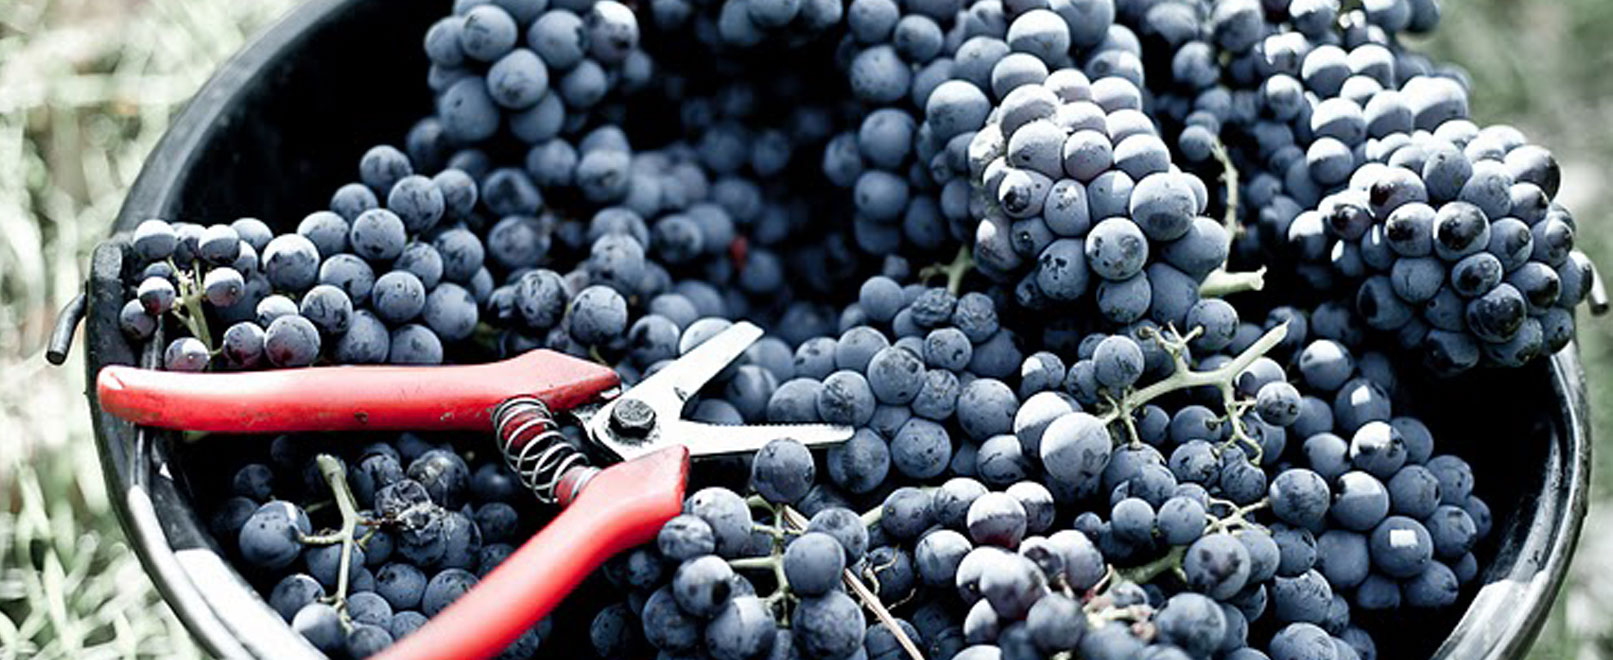 Harvest time in Vaucluse © Chateau-Pesquier